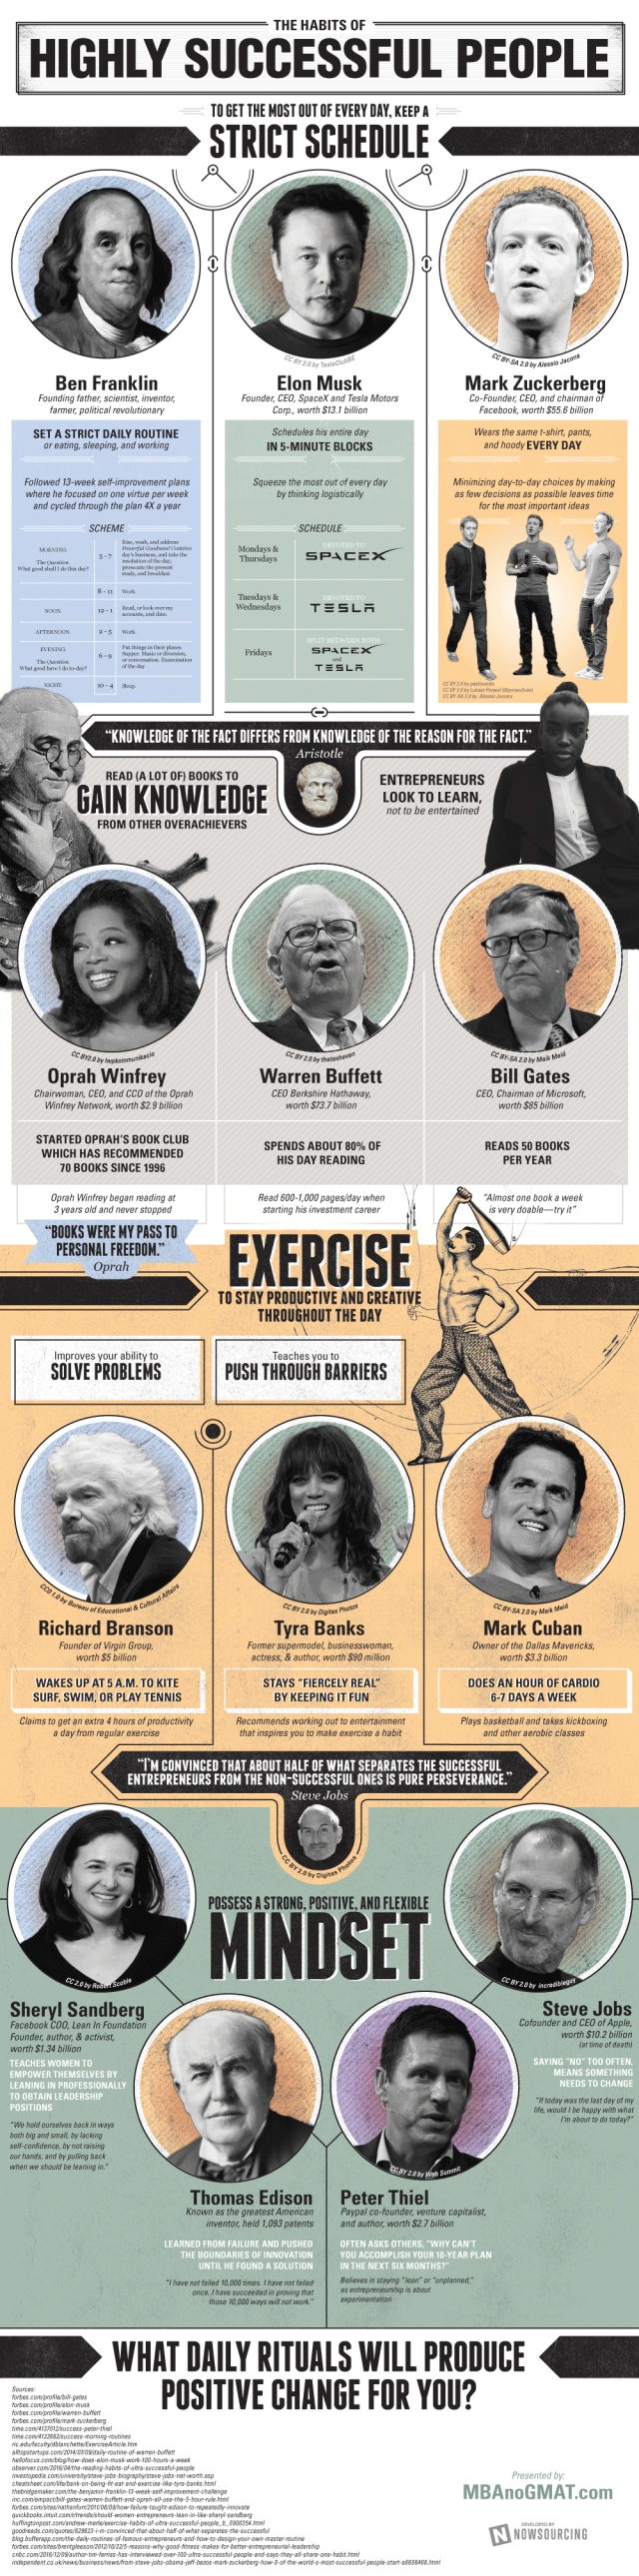 Habits of Highly Successful Entrepreneurs' infographic